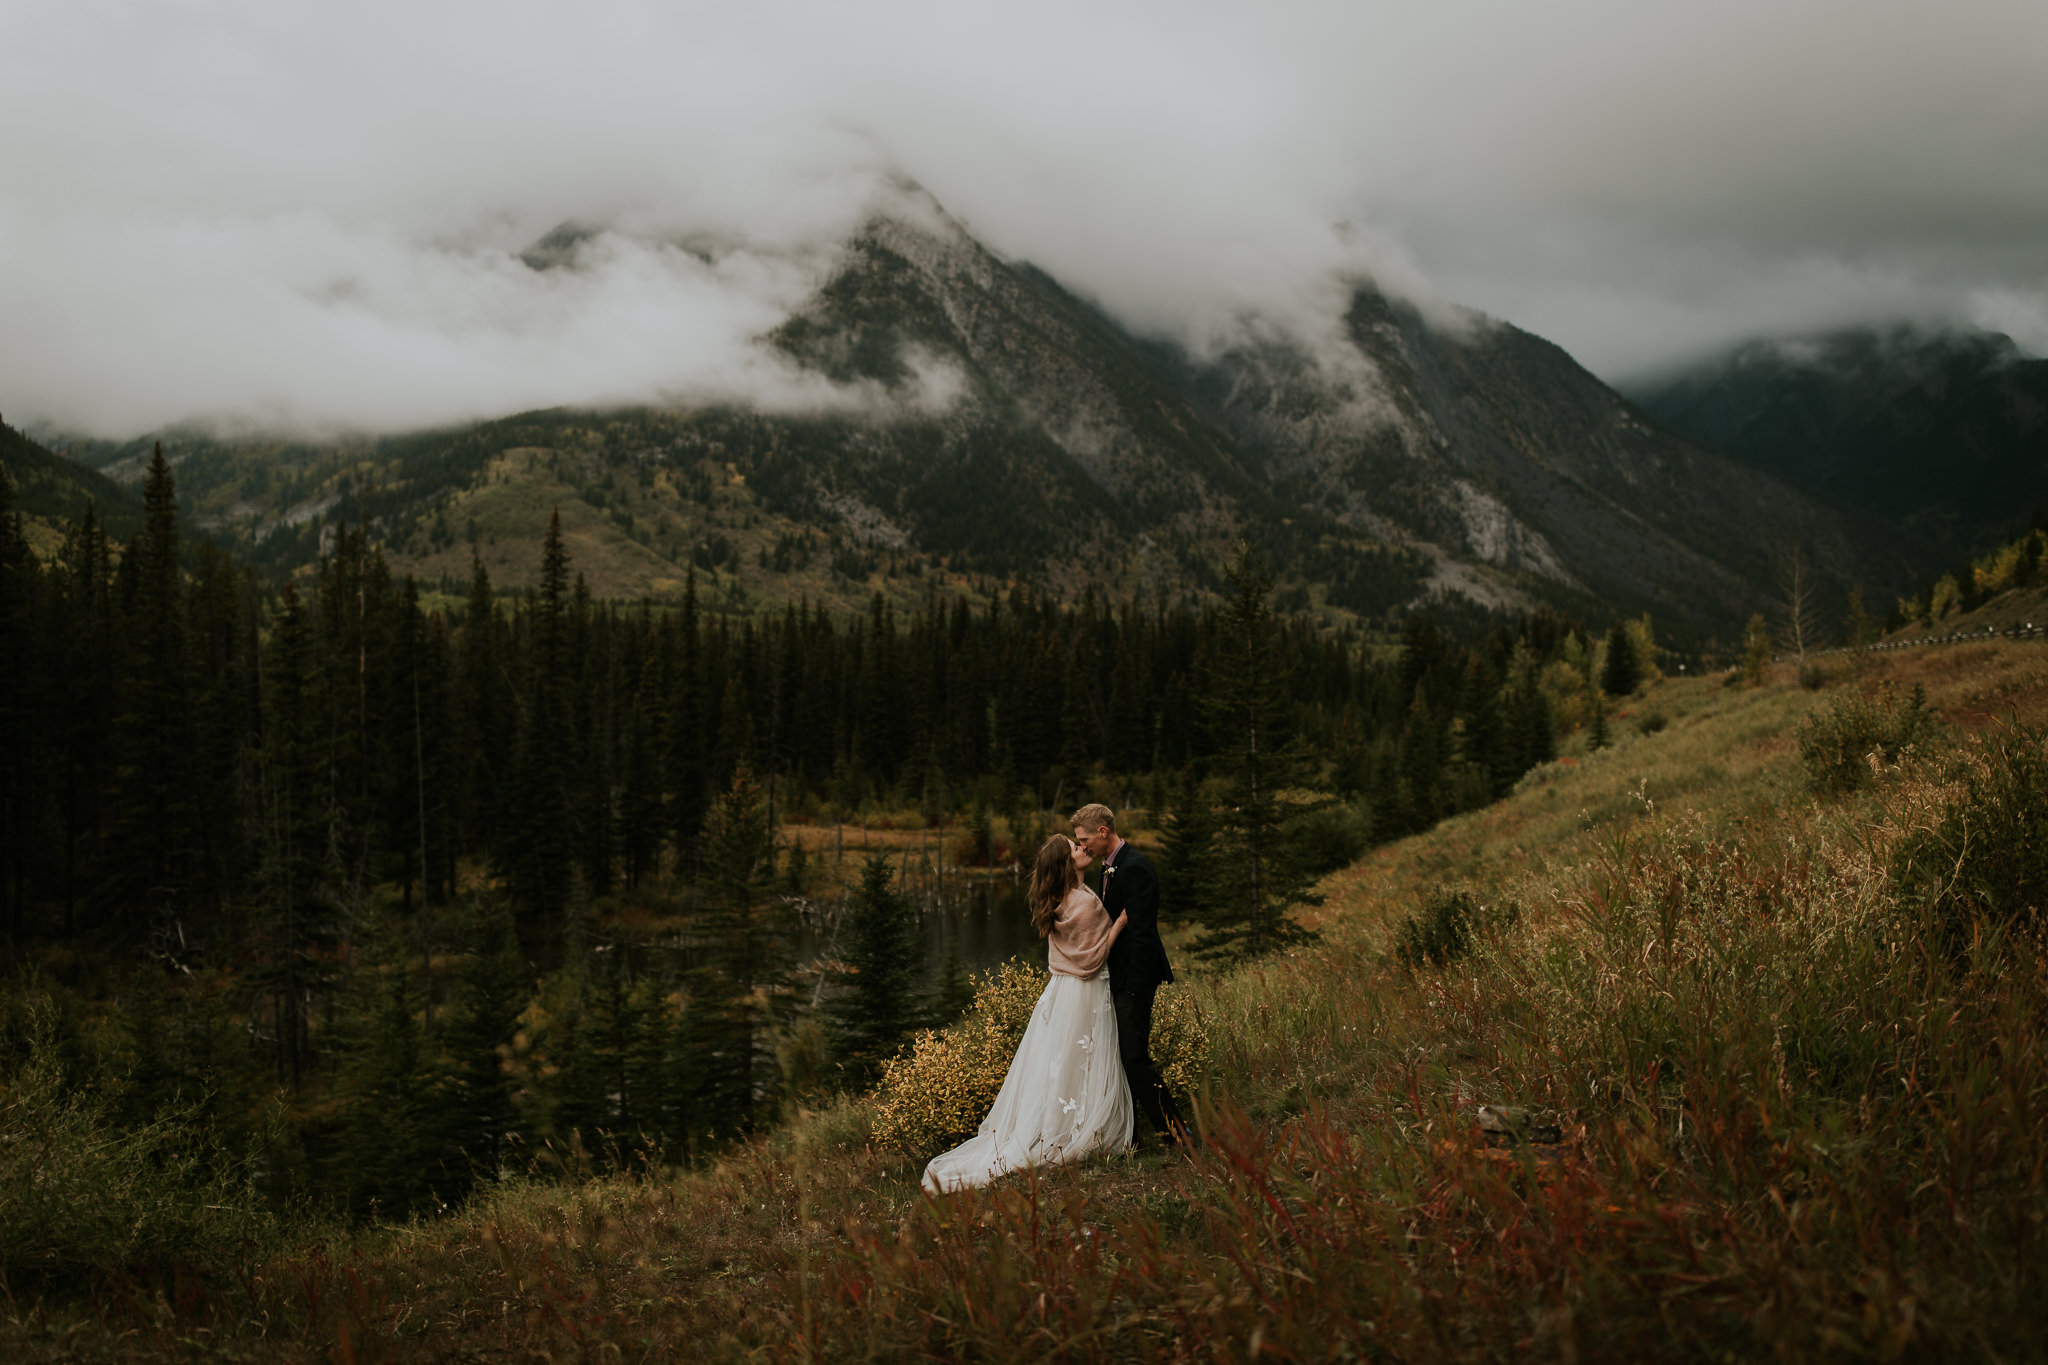 Boho bride and groom embracing on a mountainside during fall in Kananaskis Provincial Park with moody, cloud covered mountains in background.